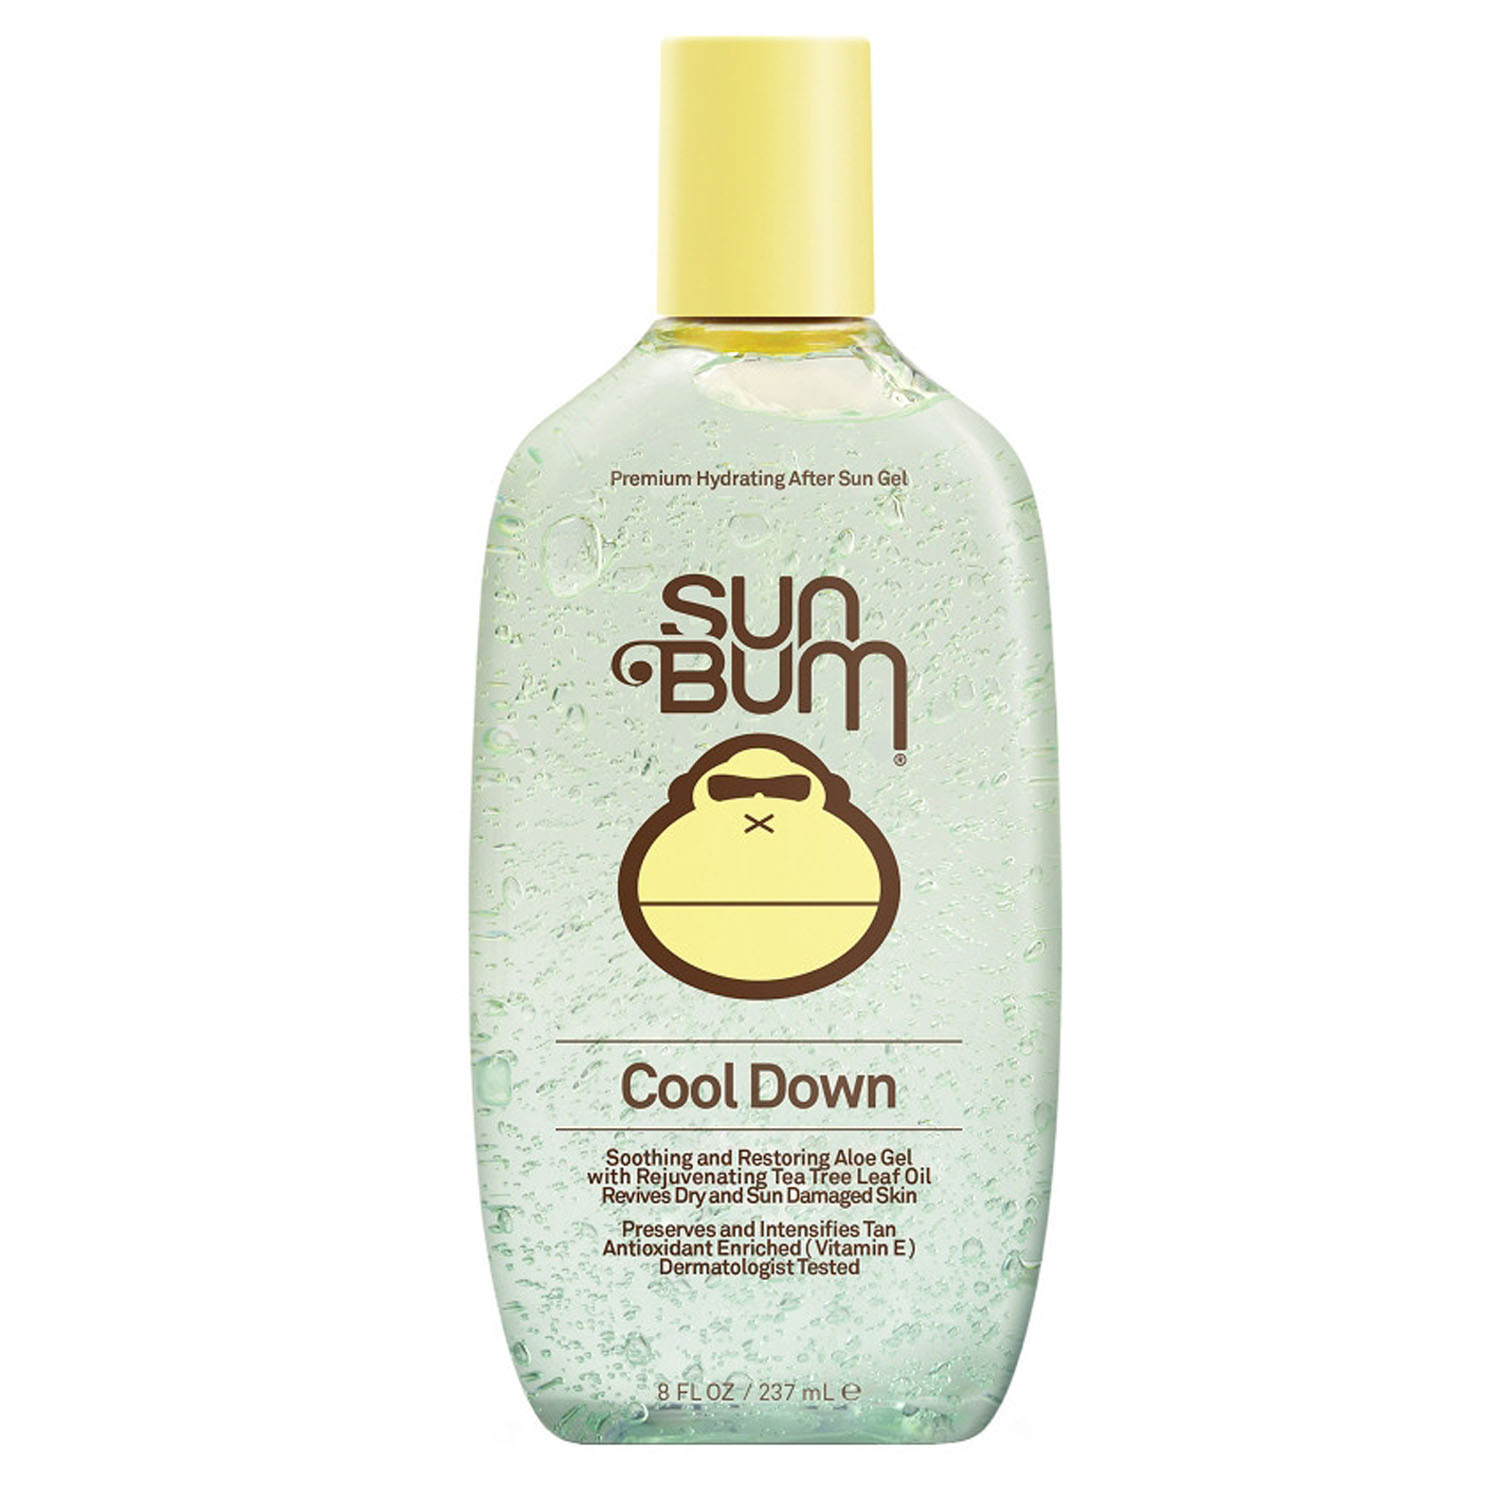 Sun Bum Cool Down Premium Hydrating After Sun Gel (8.0 fl oz / 237 ml)